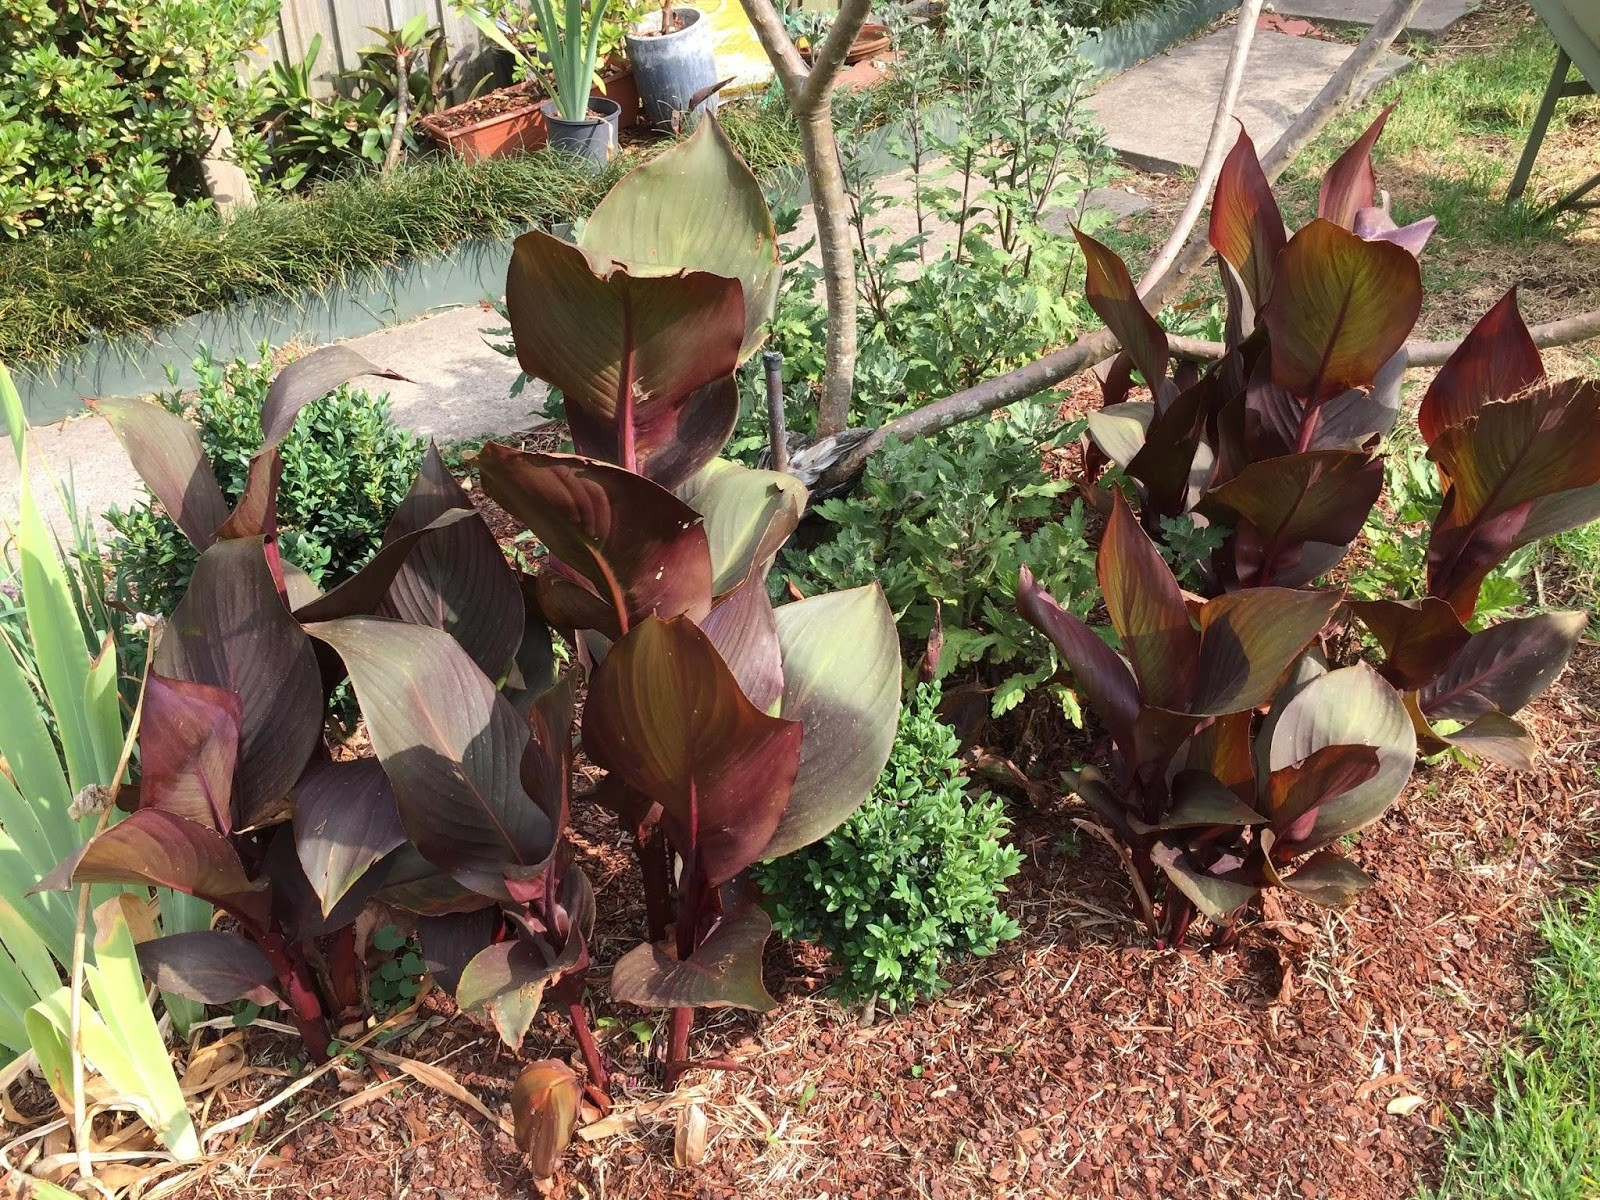 Drought Resistant Plants - Canna Lilies and frangipani